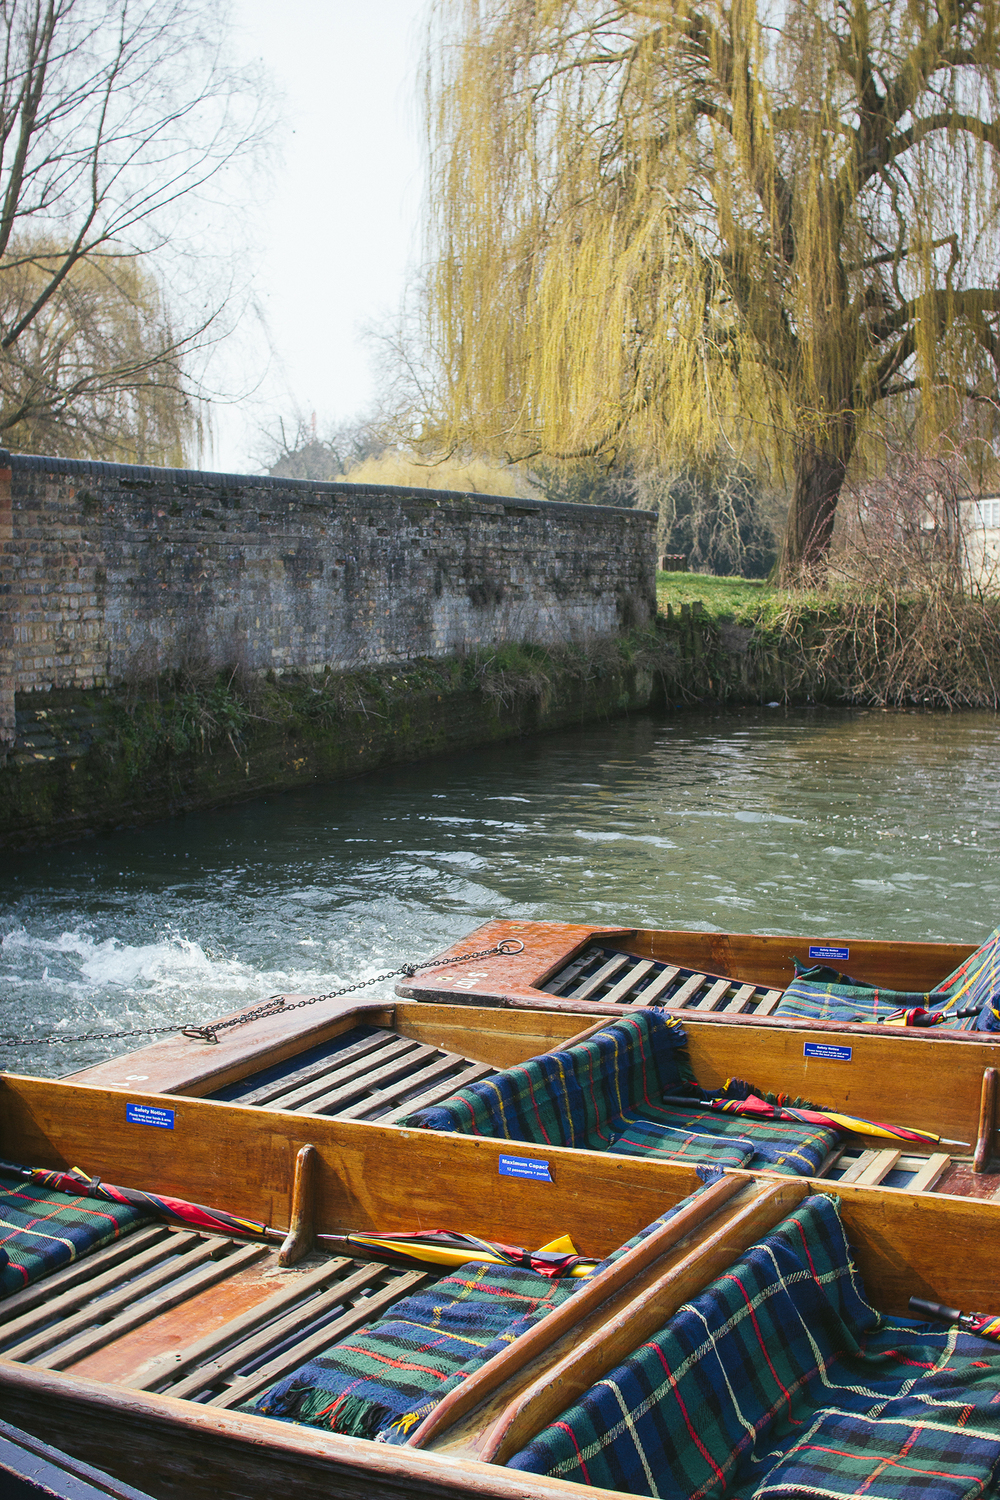 01-punting-in-cambridge-102013.jpg